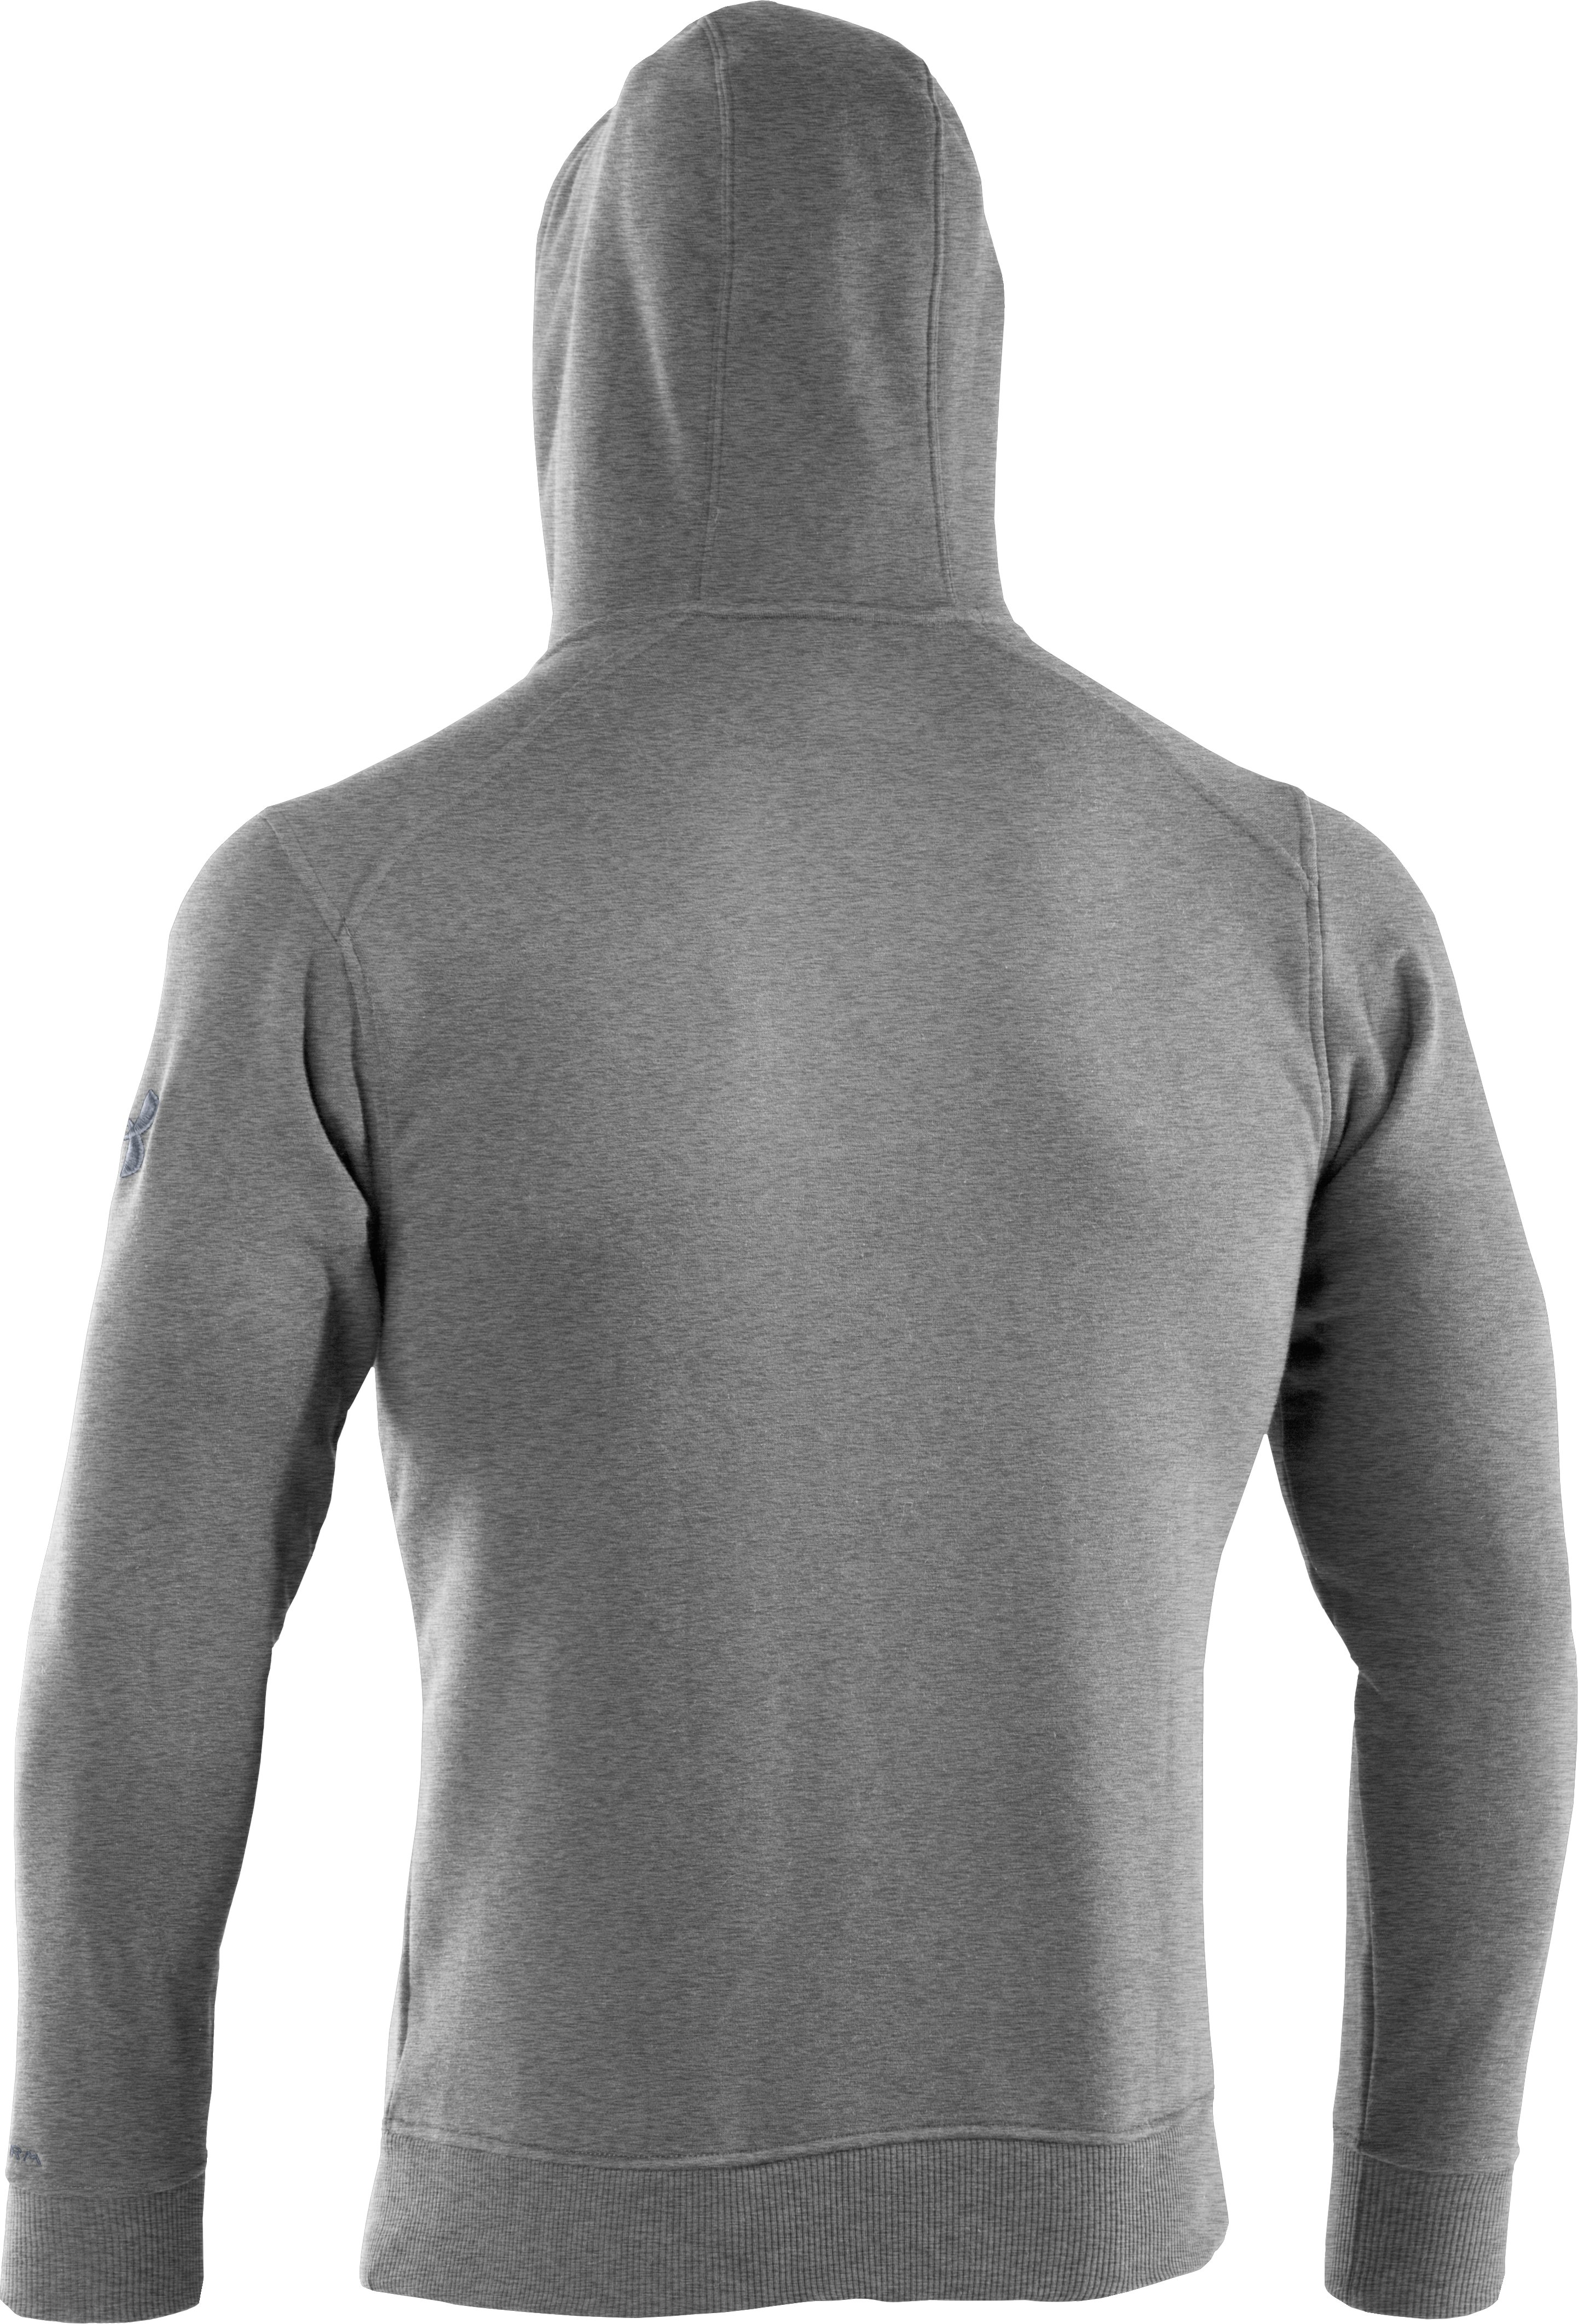 Men's Charged Cotton® Storm Full Zip Hoodie, True Gray Heather, undefined